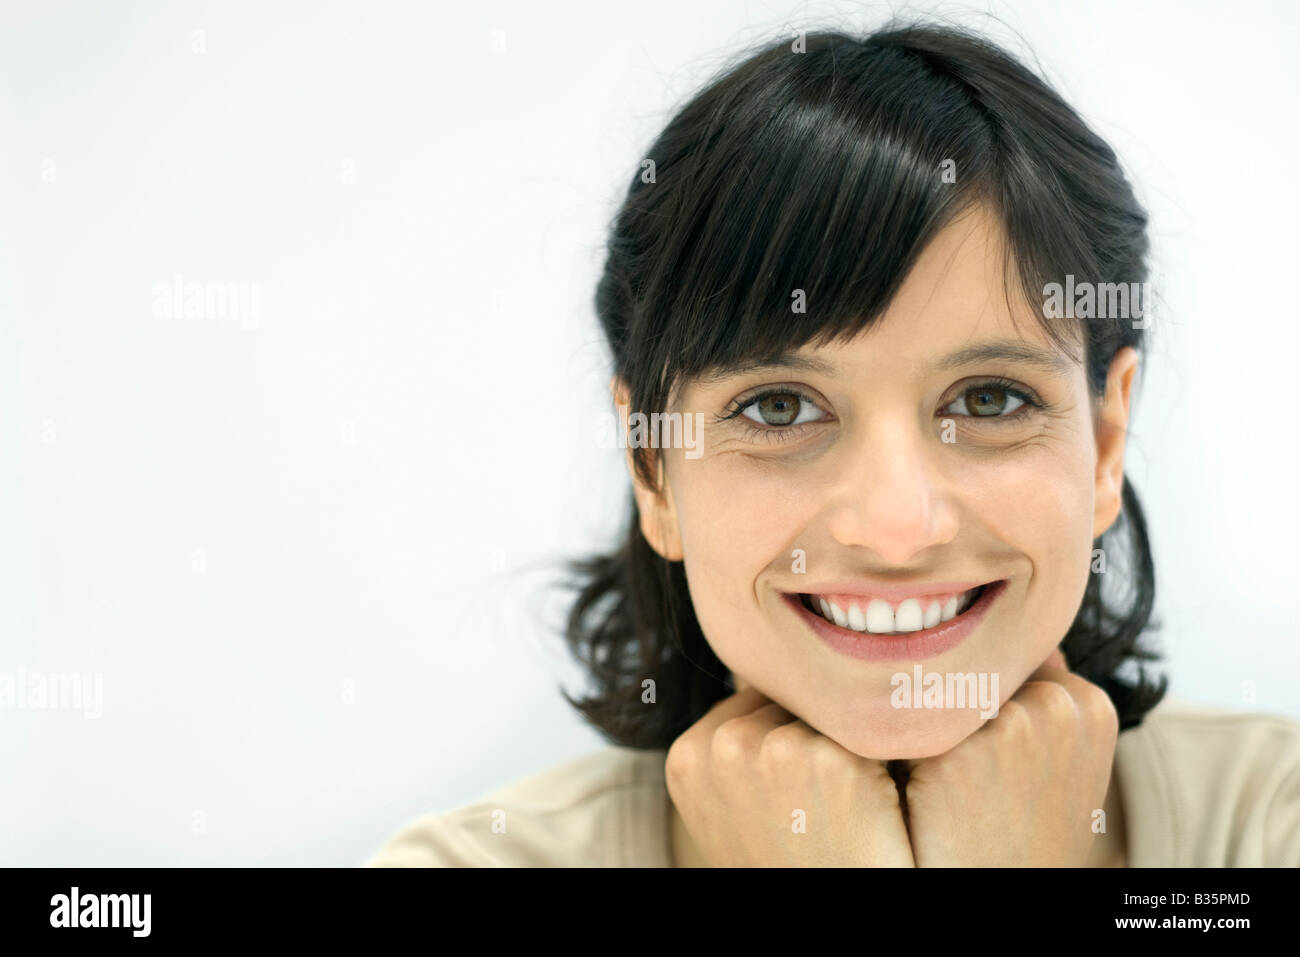 Woman smiling at camera, hands under chin, portrait - Stock Image